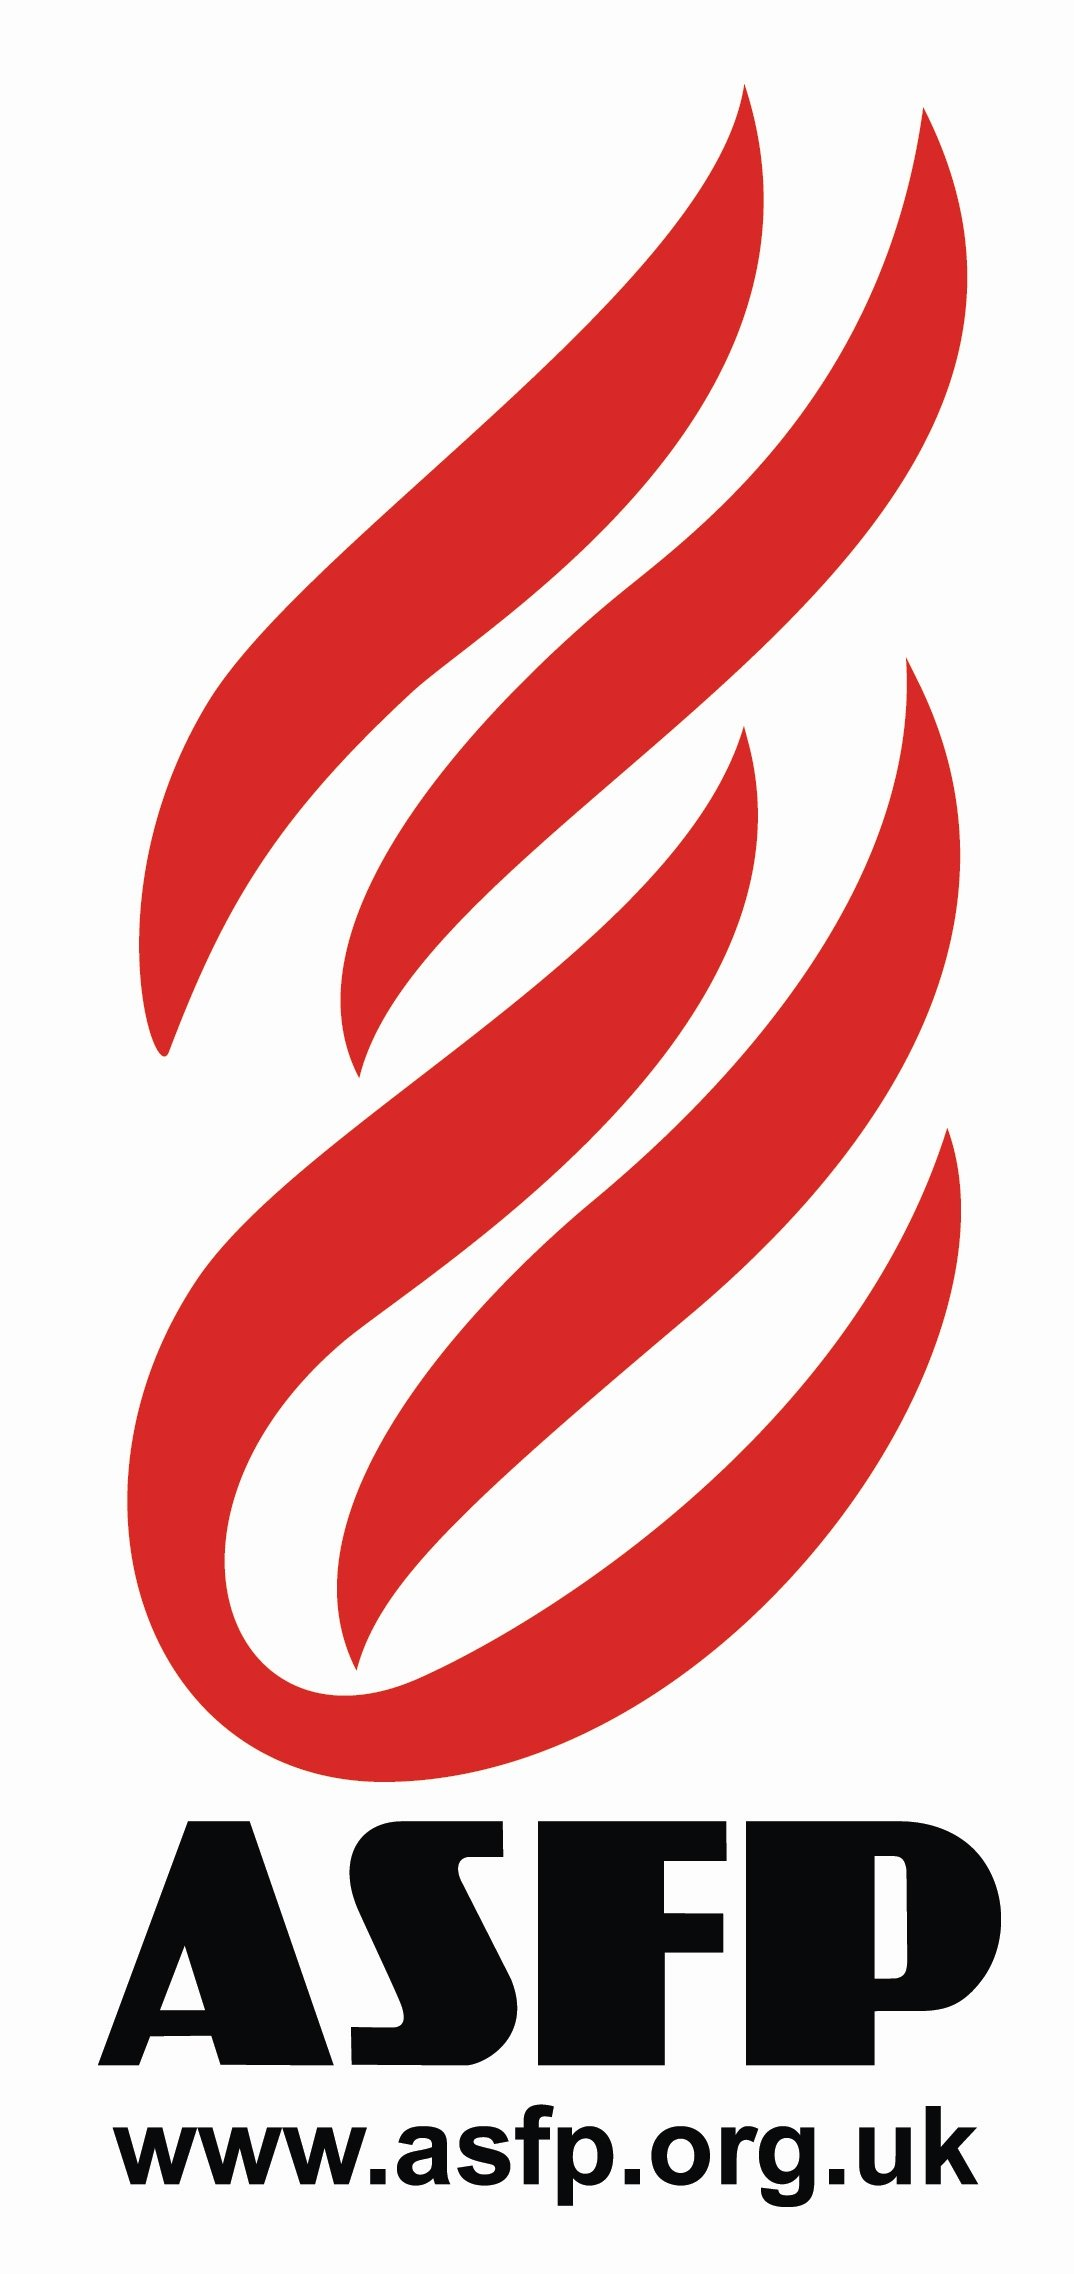 ASFP Logo - Association for Specialist Fire Protection